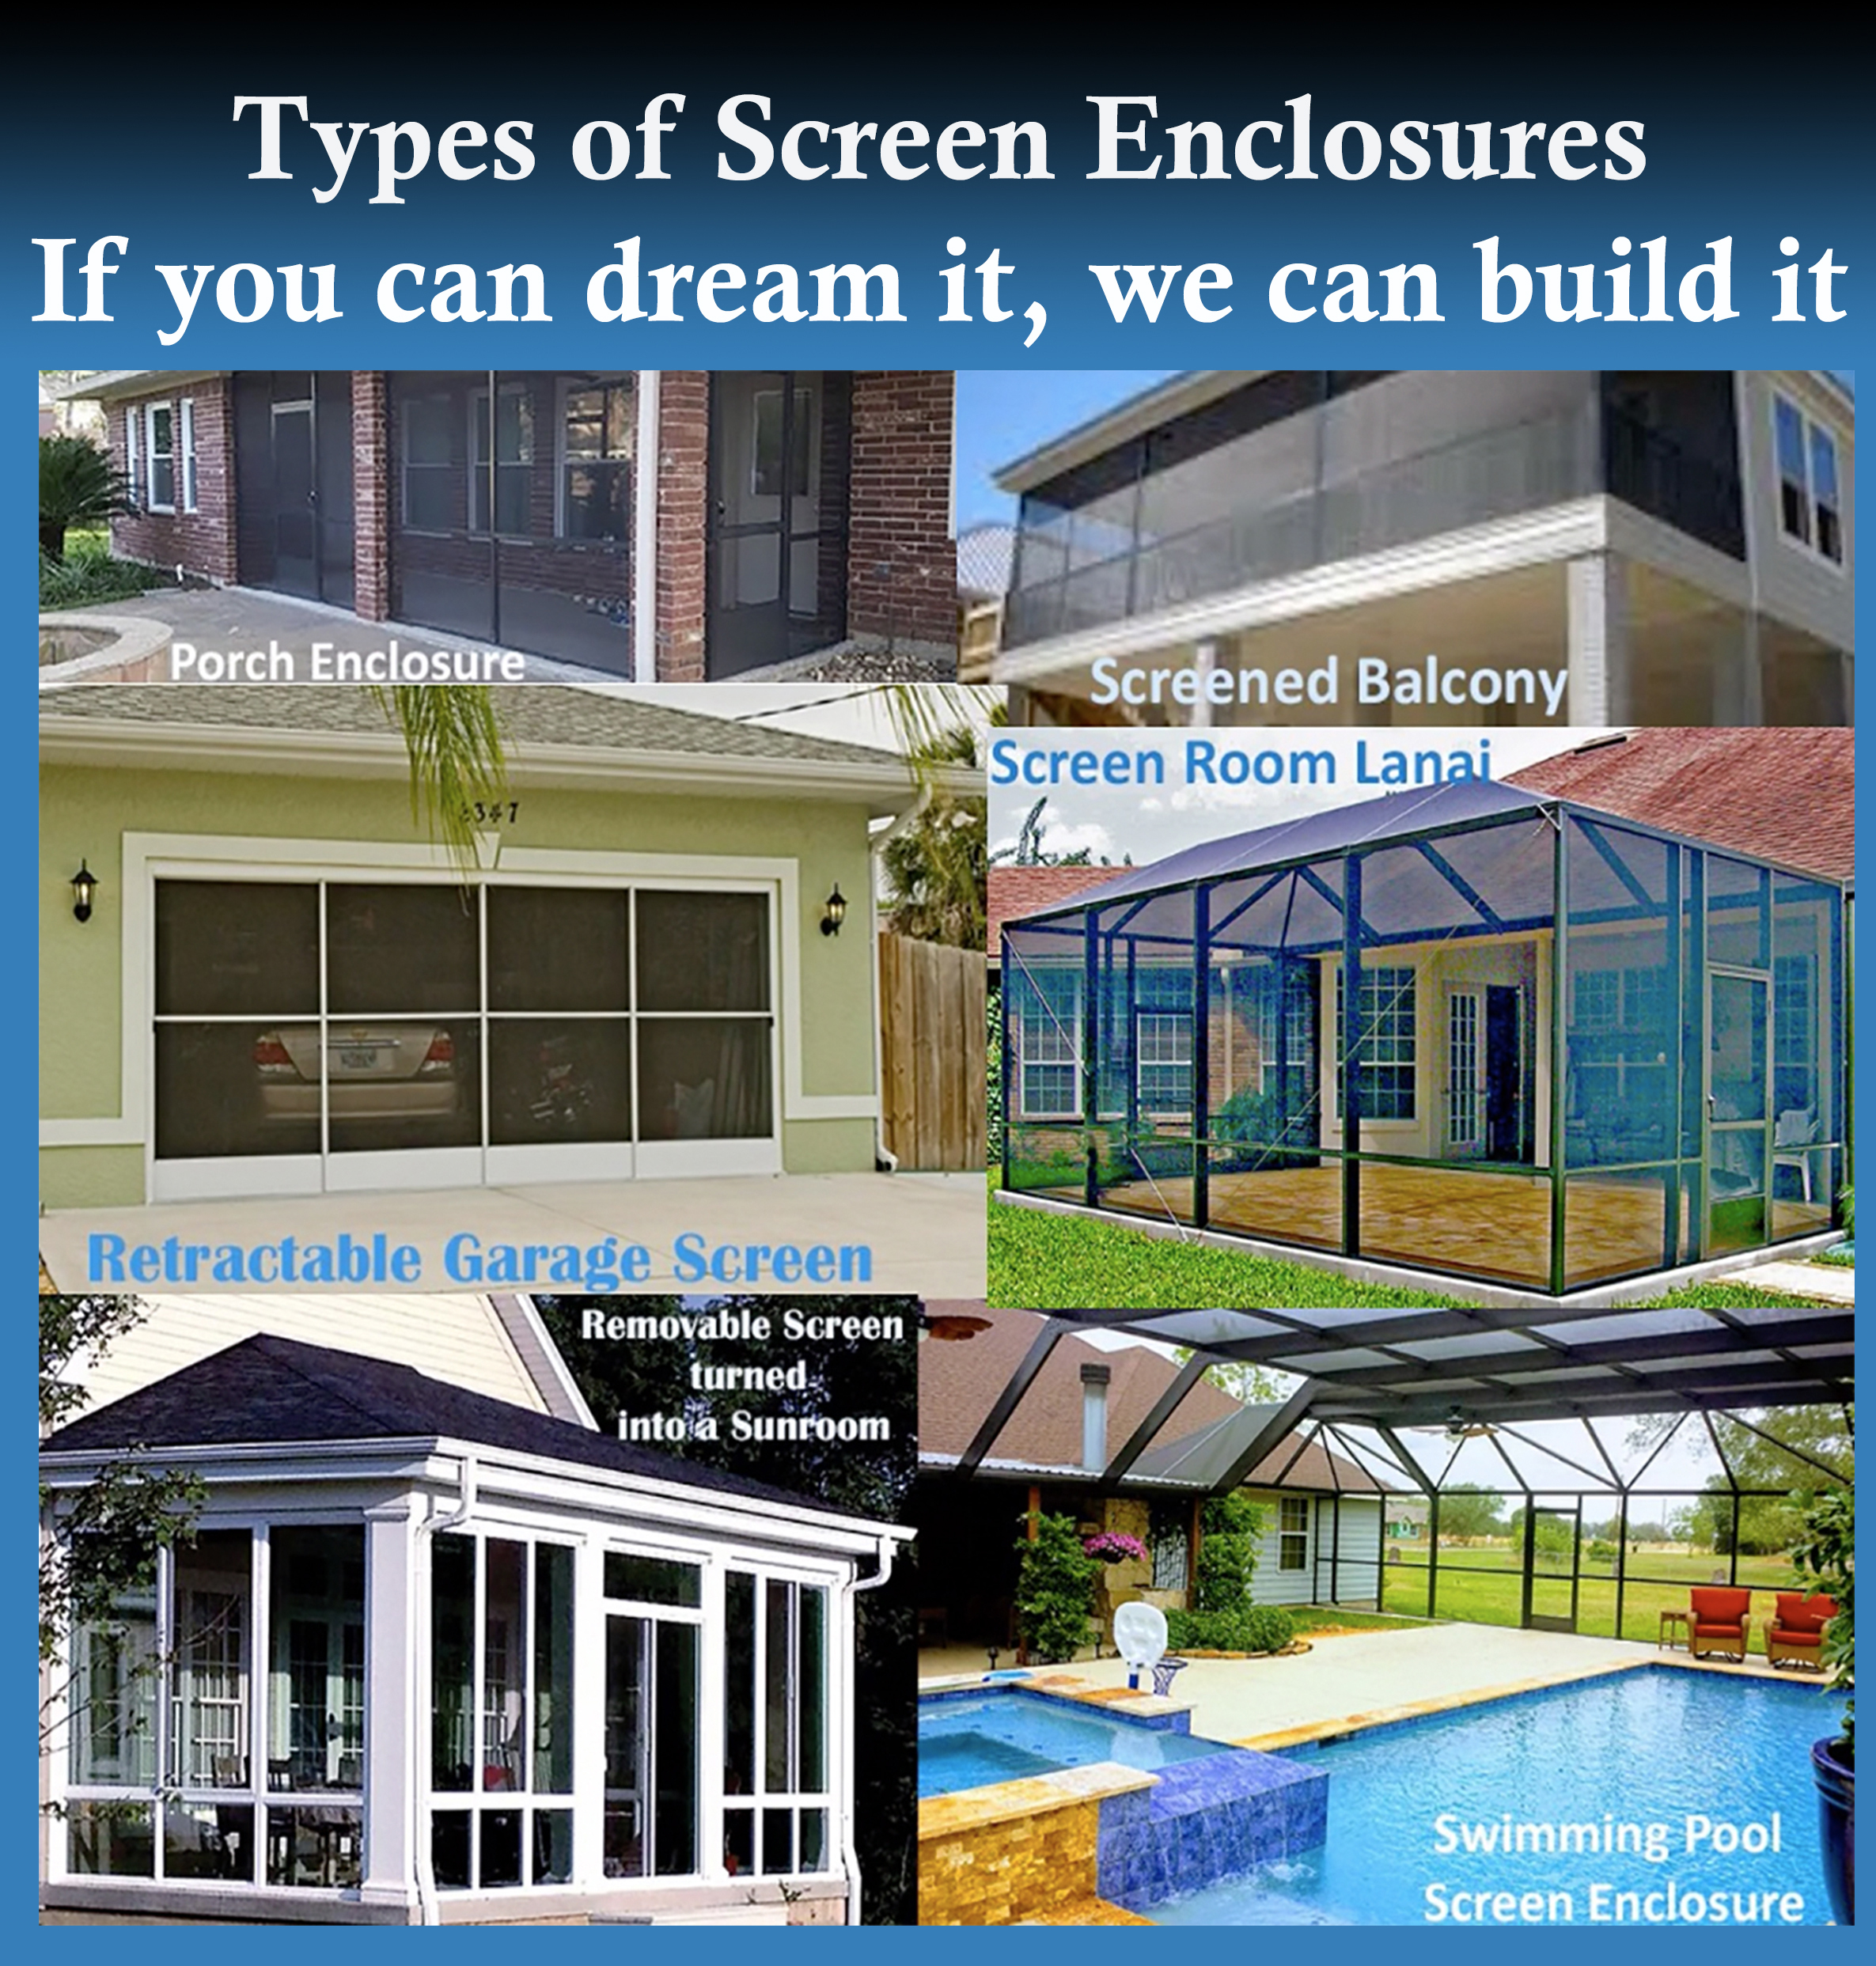 Pool Screen Enclosures And Liferoom In Houston Simmons Home Design